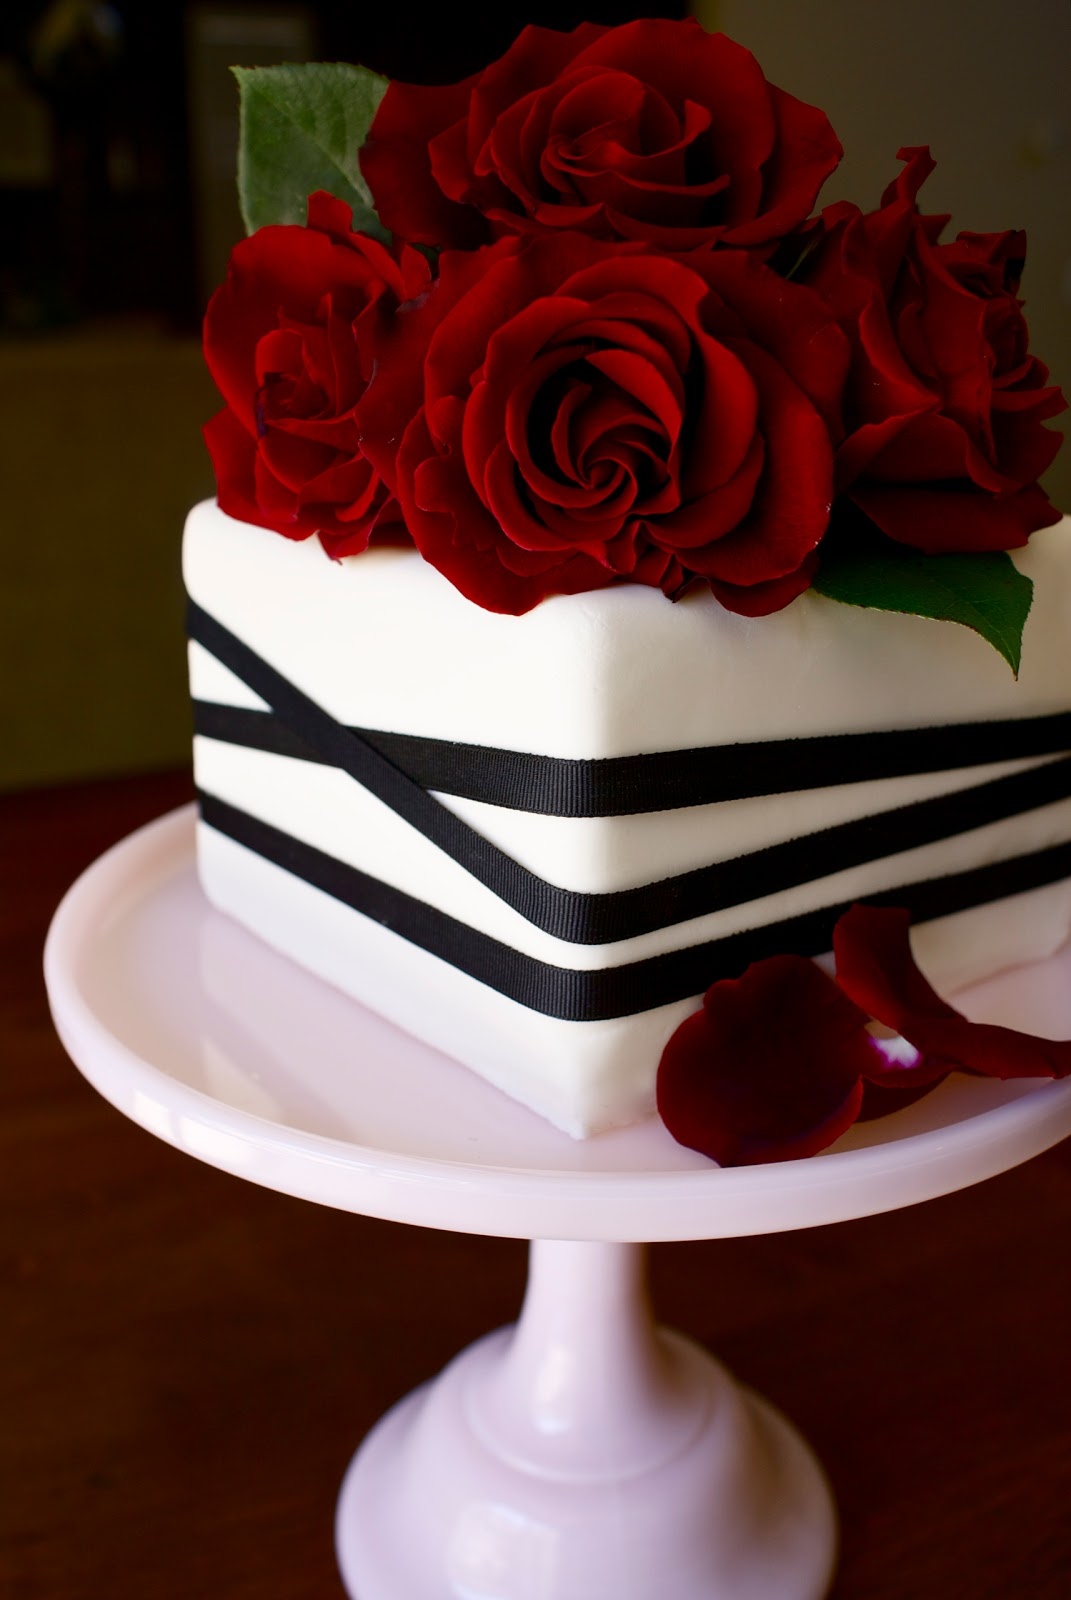 Images Of Cake With Roses : BAKESHOPmarie: red roses anniversary cake